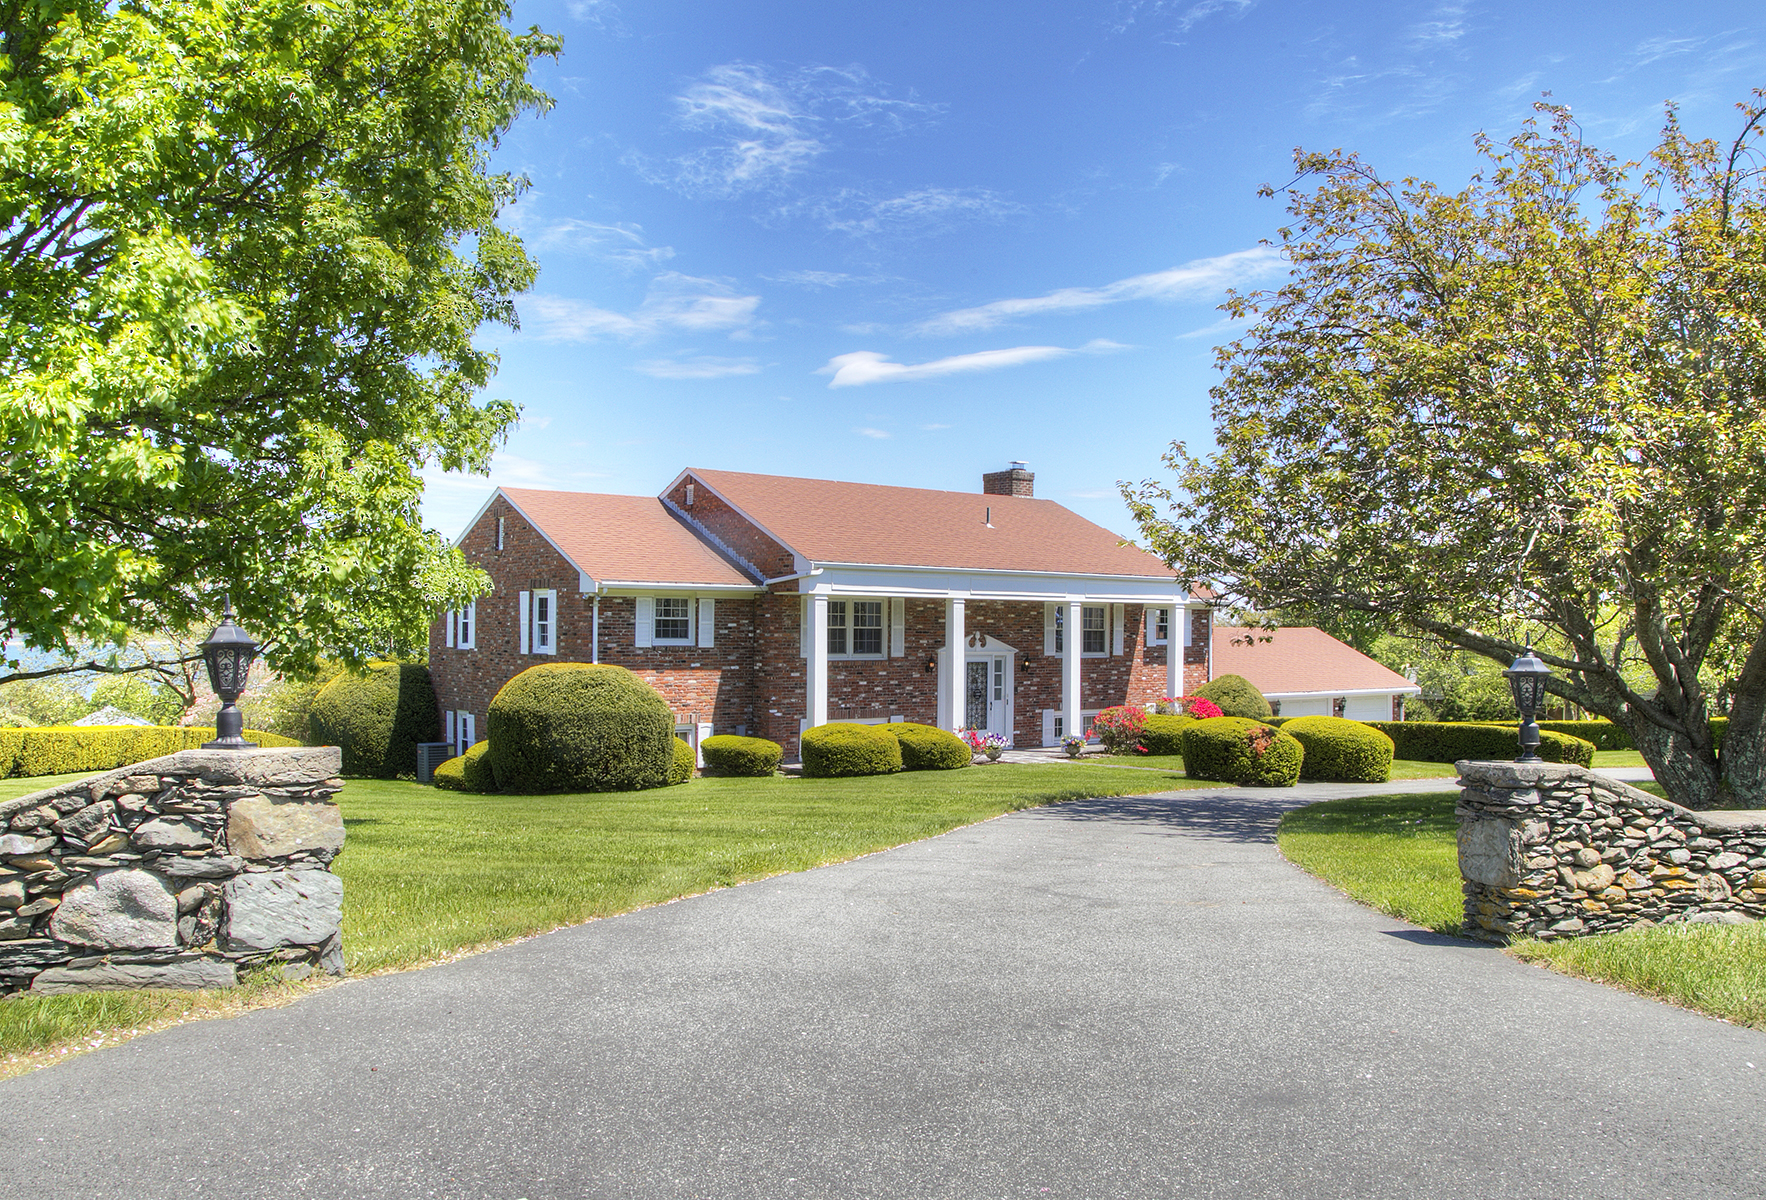 Single Family Home for Sale at Sandy Point Water View 140 Adams Drive Portsmouth, Rhode Island 02871 United States